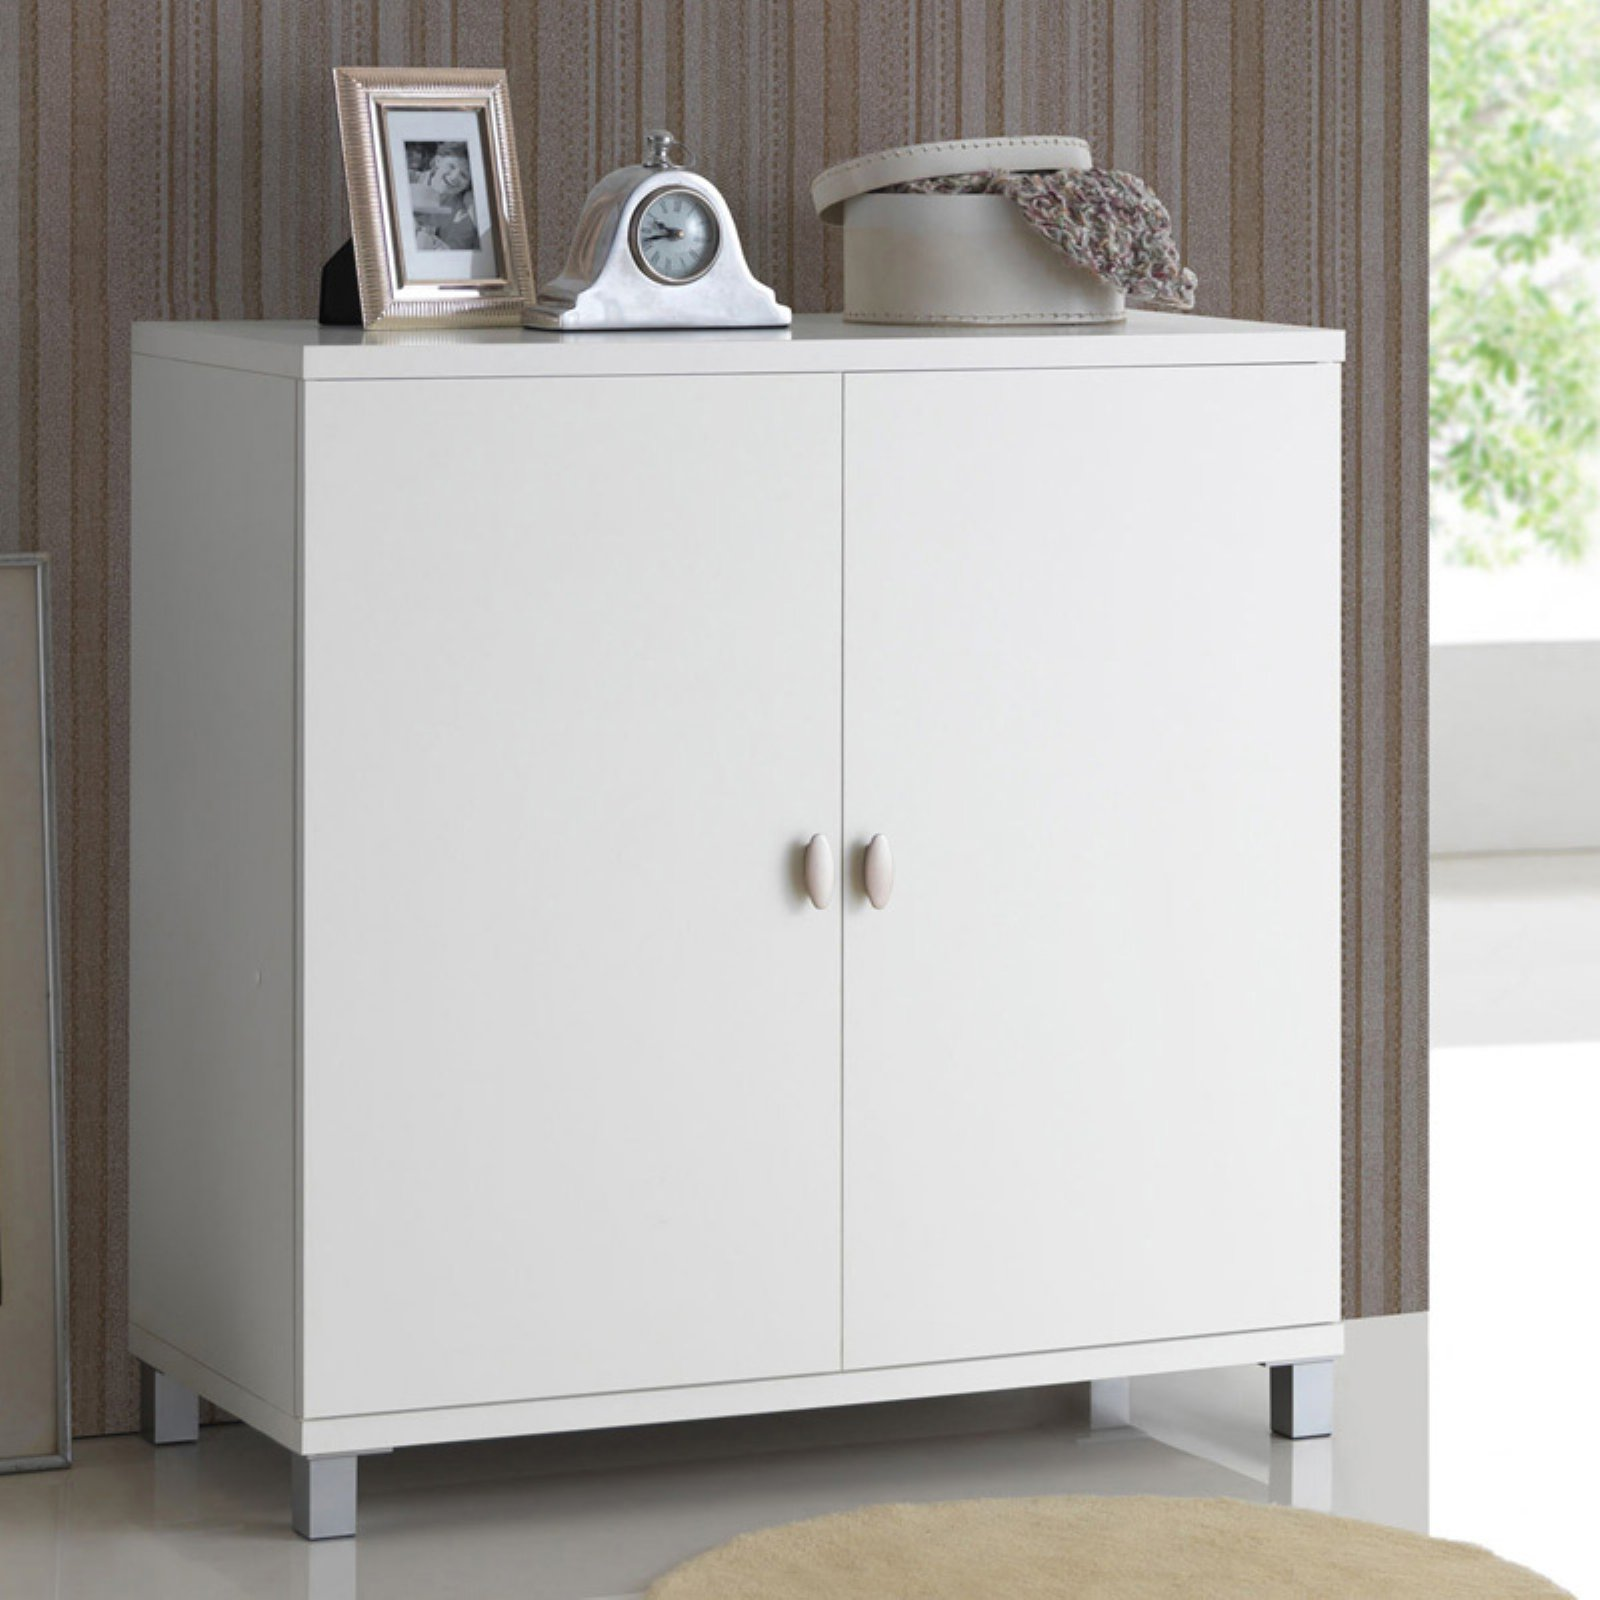 Baxton Studio Marcy Modern and Contemporary White Wood Entryway Handbags or School Bags Storage Sideboard Cabinet by Wholesale Interiors